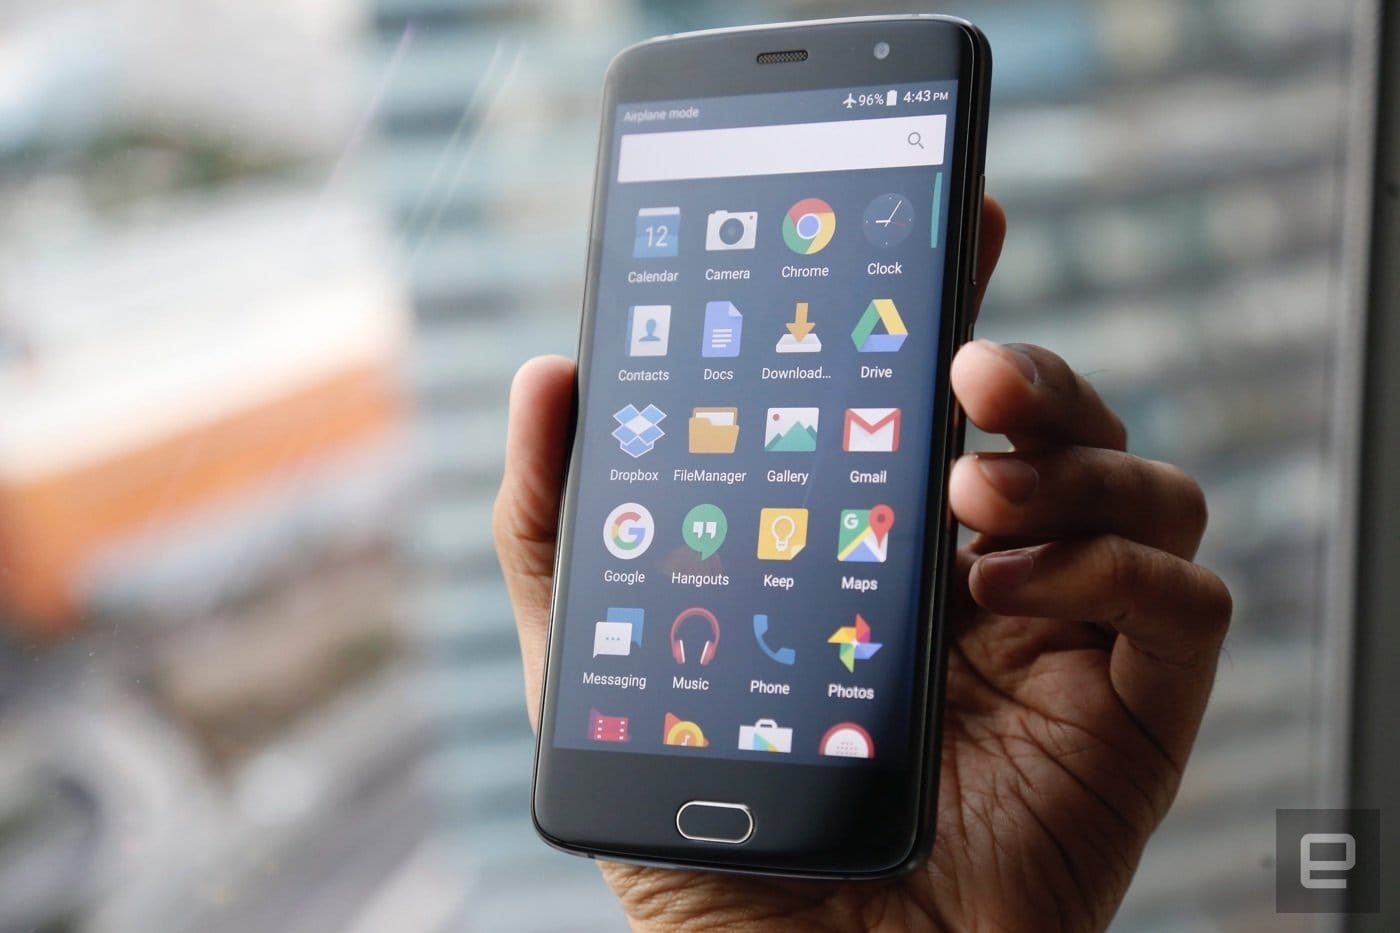 The Morning After: Most Android antivirus apps don't work properly